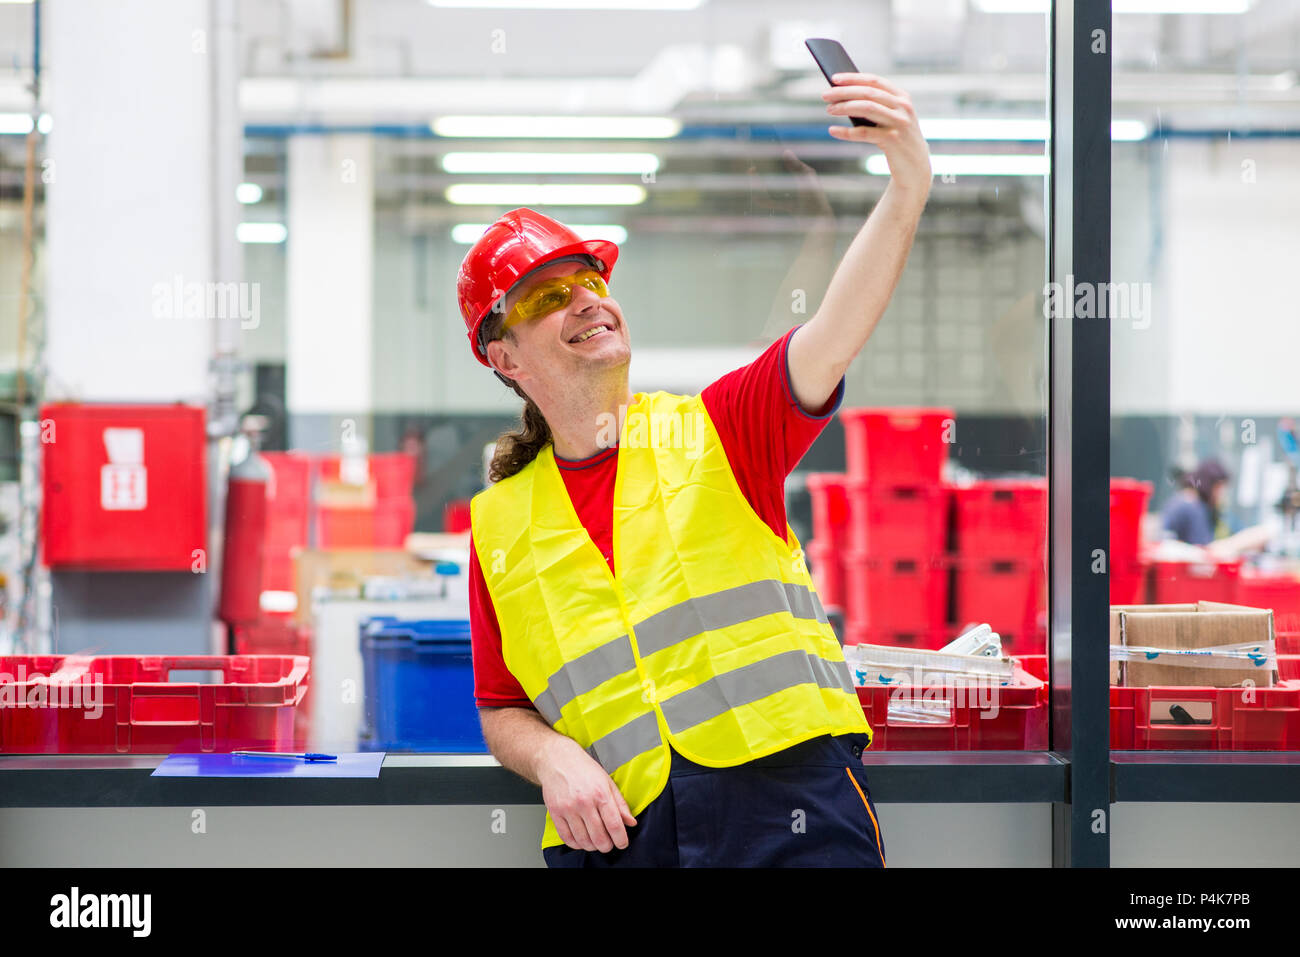 Worker in reflective west with red helmet taking selfie in a factory - Stock Image